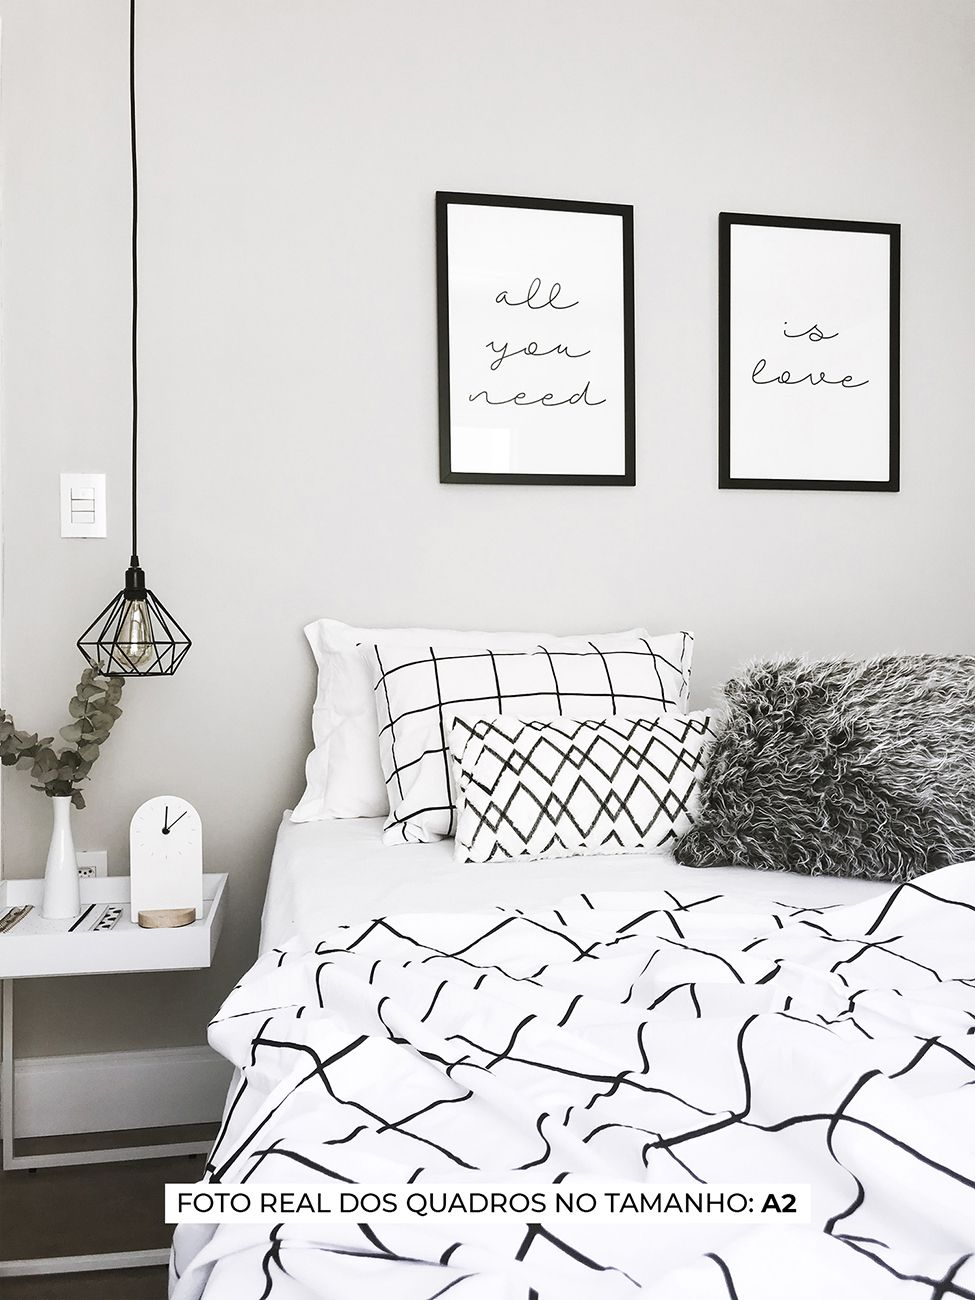 KIT QUADROS ALL YOU NEED / IS LOVE decorativos